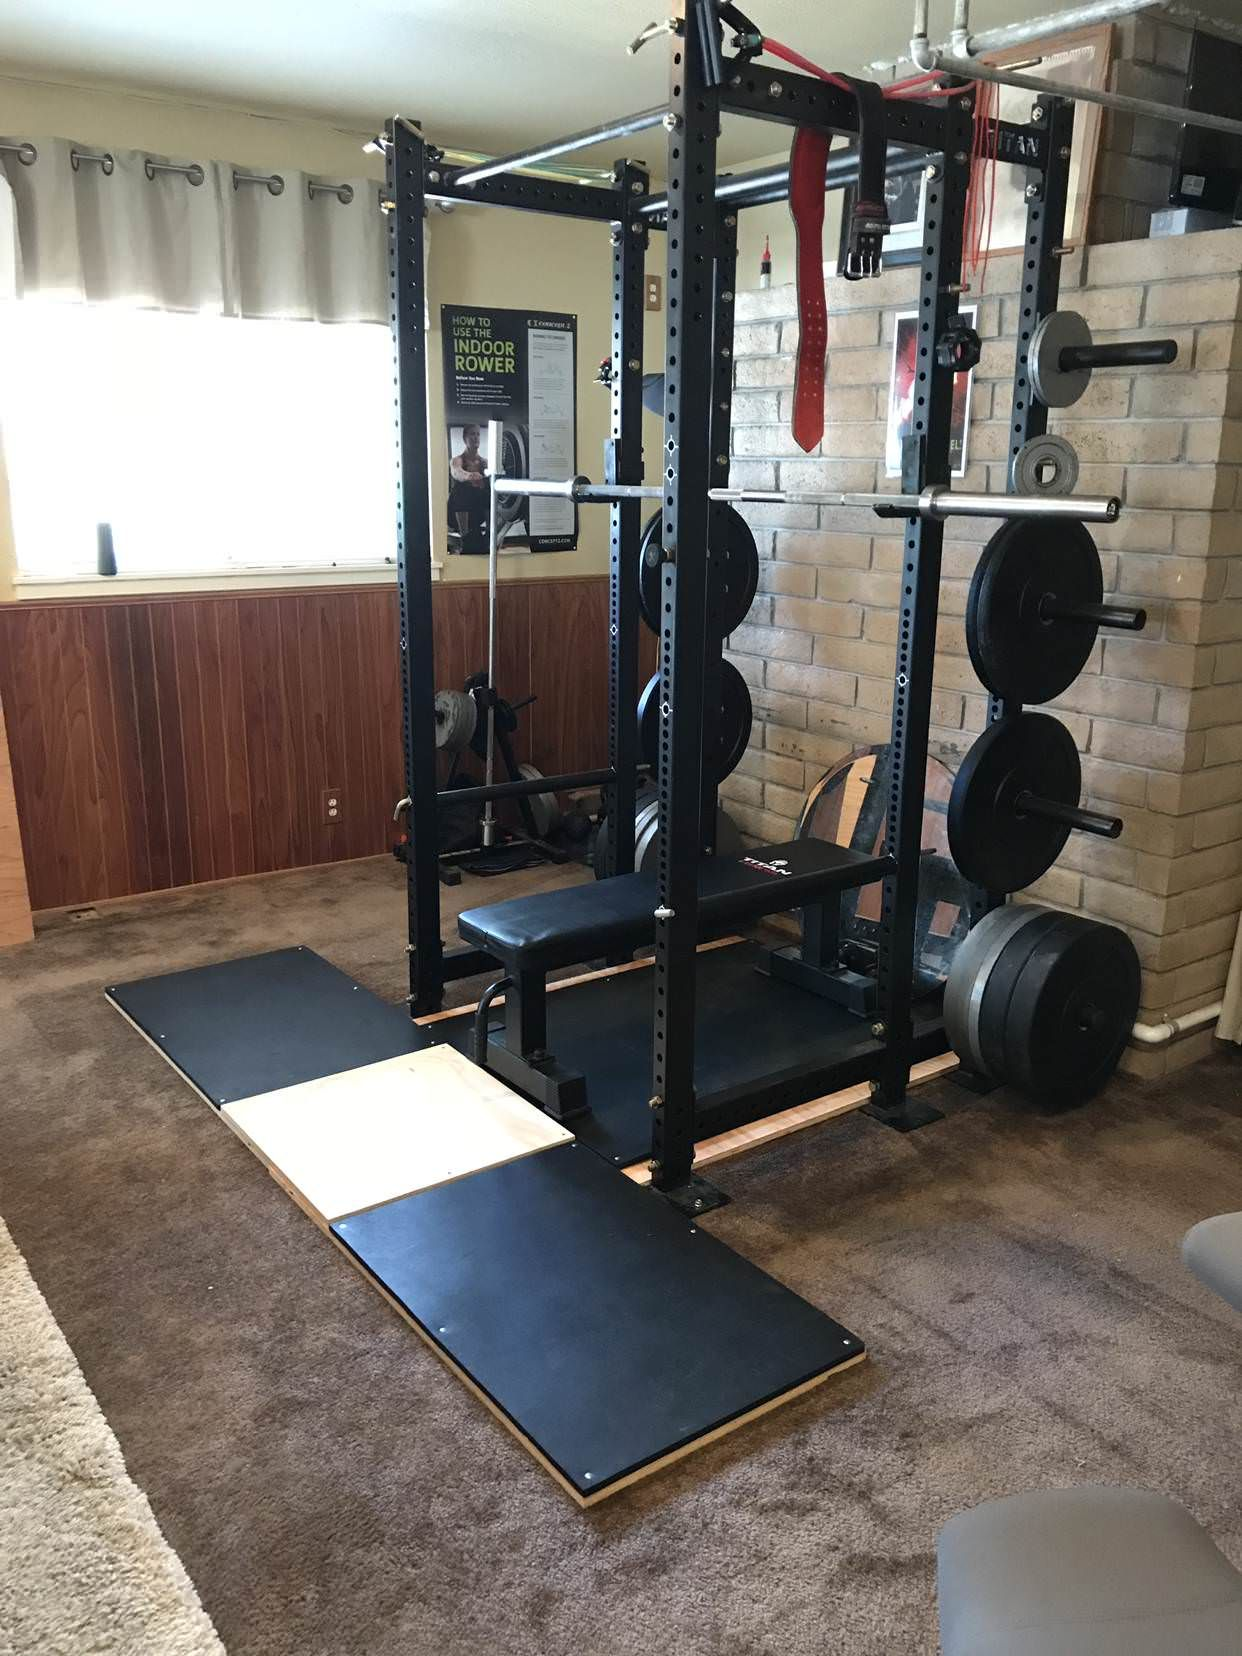 Pin By Exercise Collage On Home Gym - Pinterest -